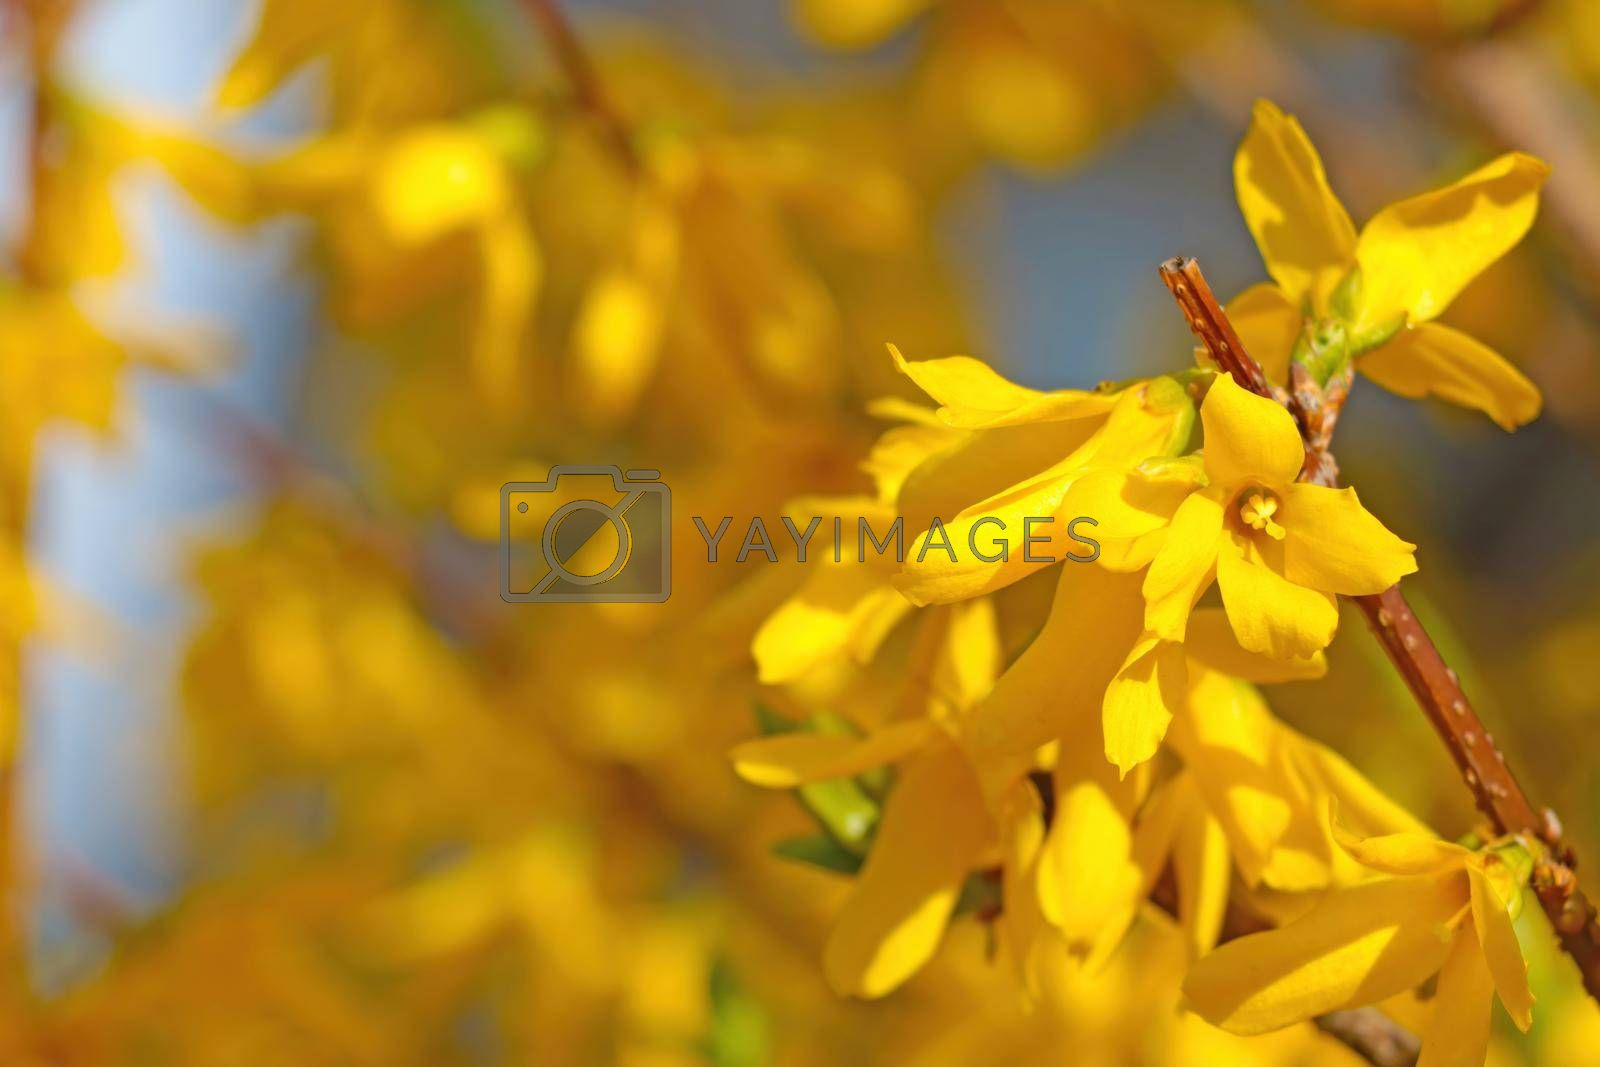 Royalty free image of Beautiful yellow blooming forsythia in the park in spring. by kip02kas